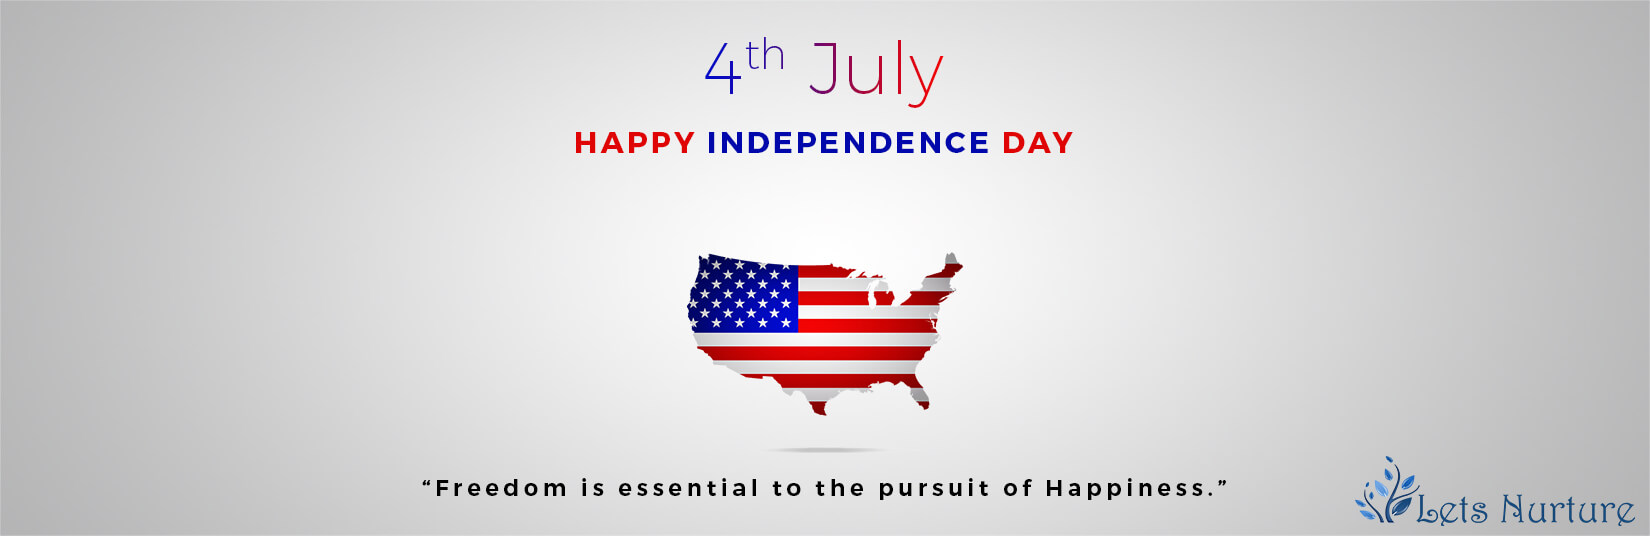 LetsNurture wishes America a Happy 4th of July!